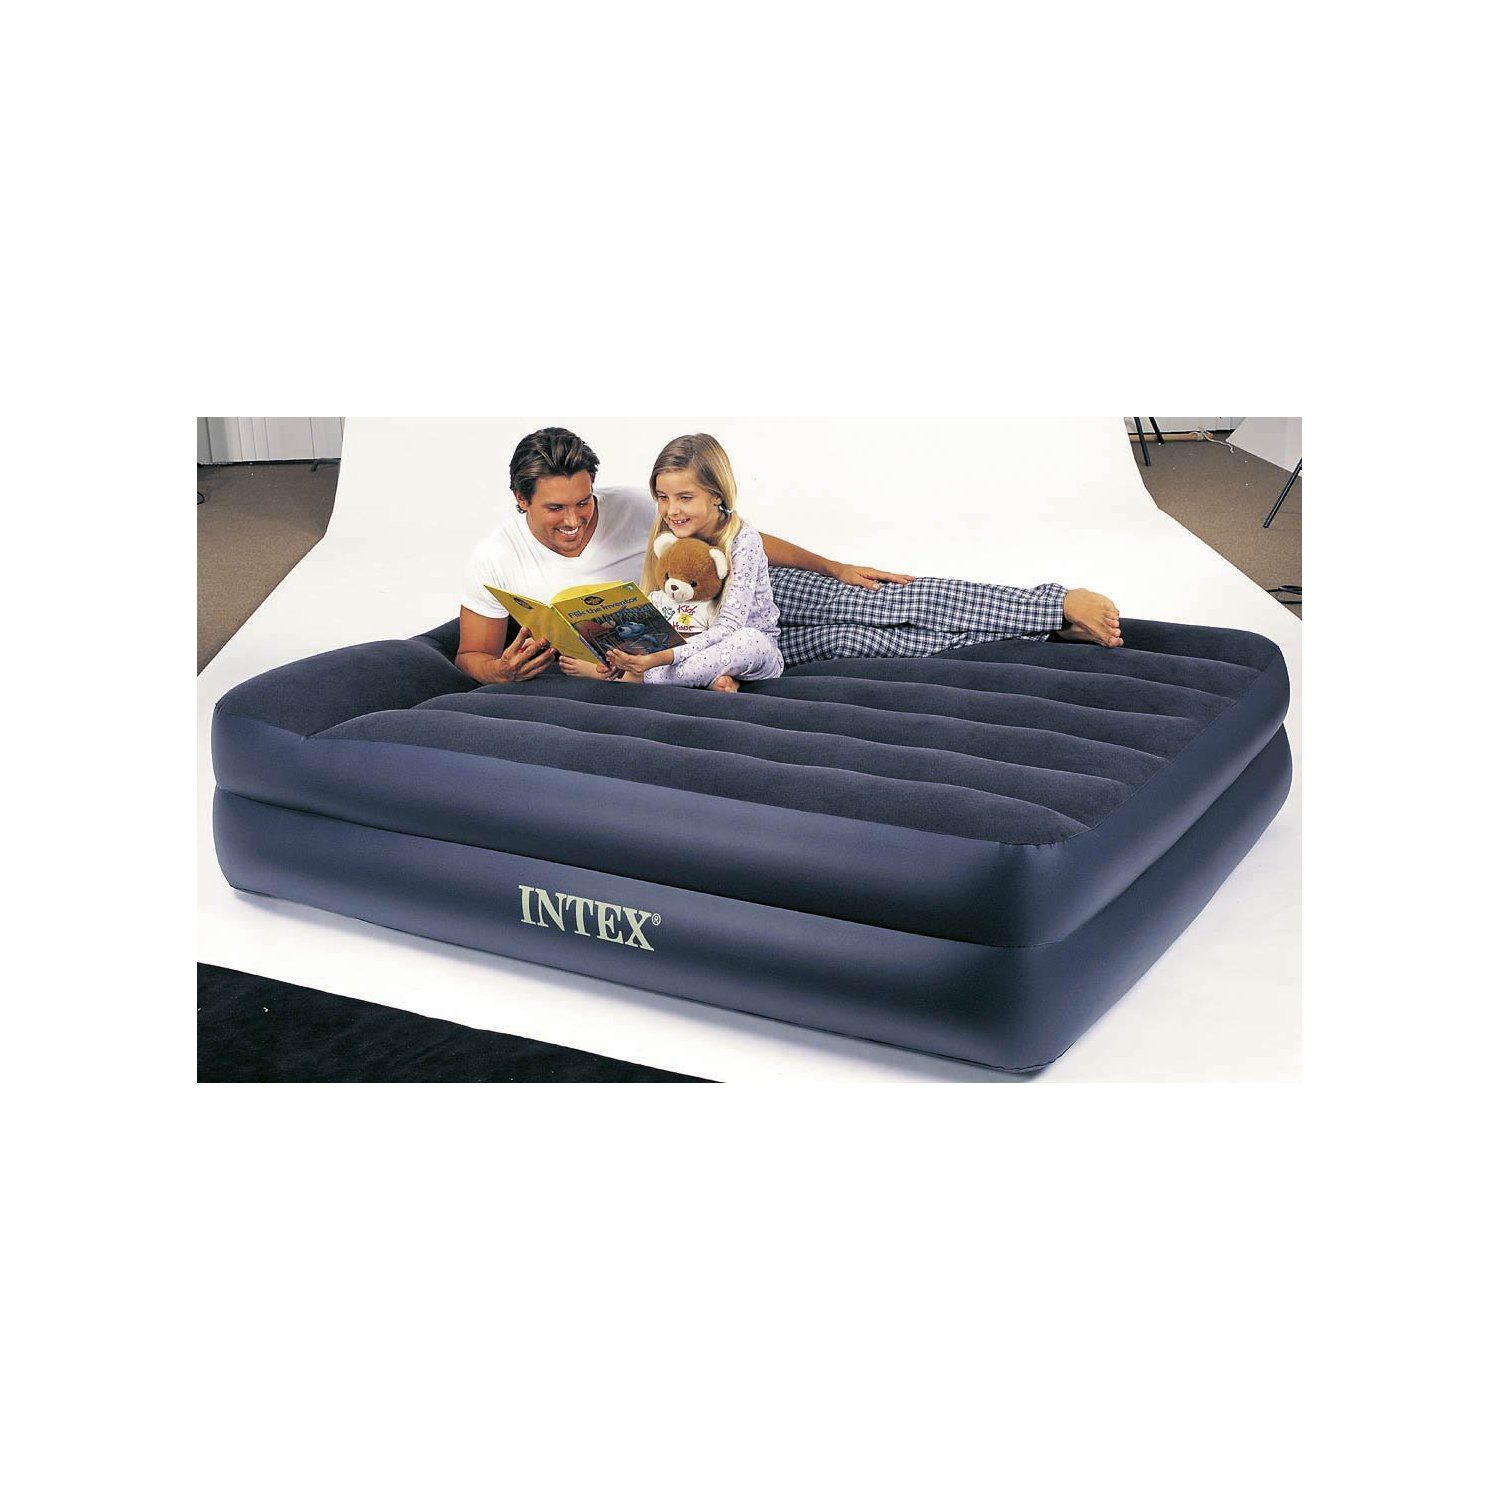 Materasso Letto Gonfiabile Airbed.Materasso Gonfiabile Inflatable Bed Air Mattress Queen Mattress